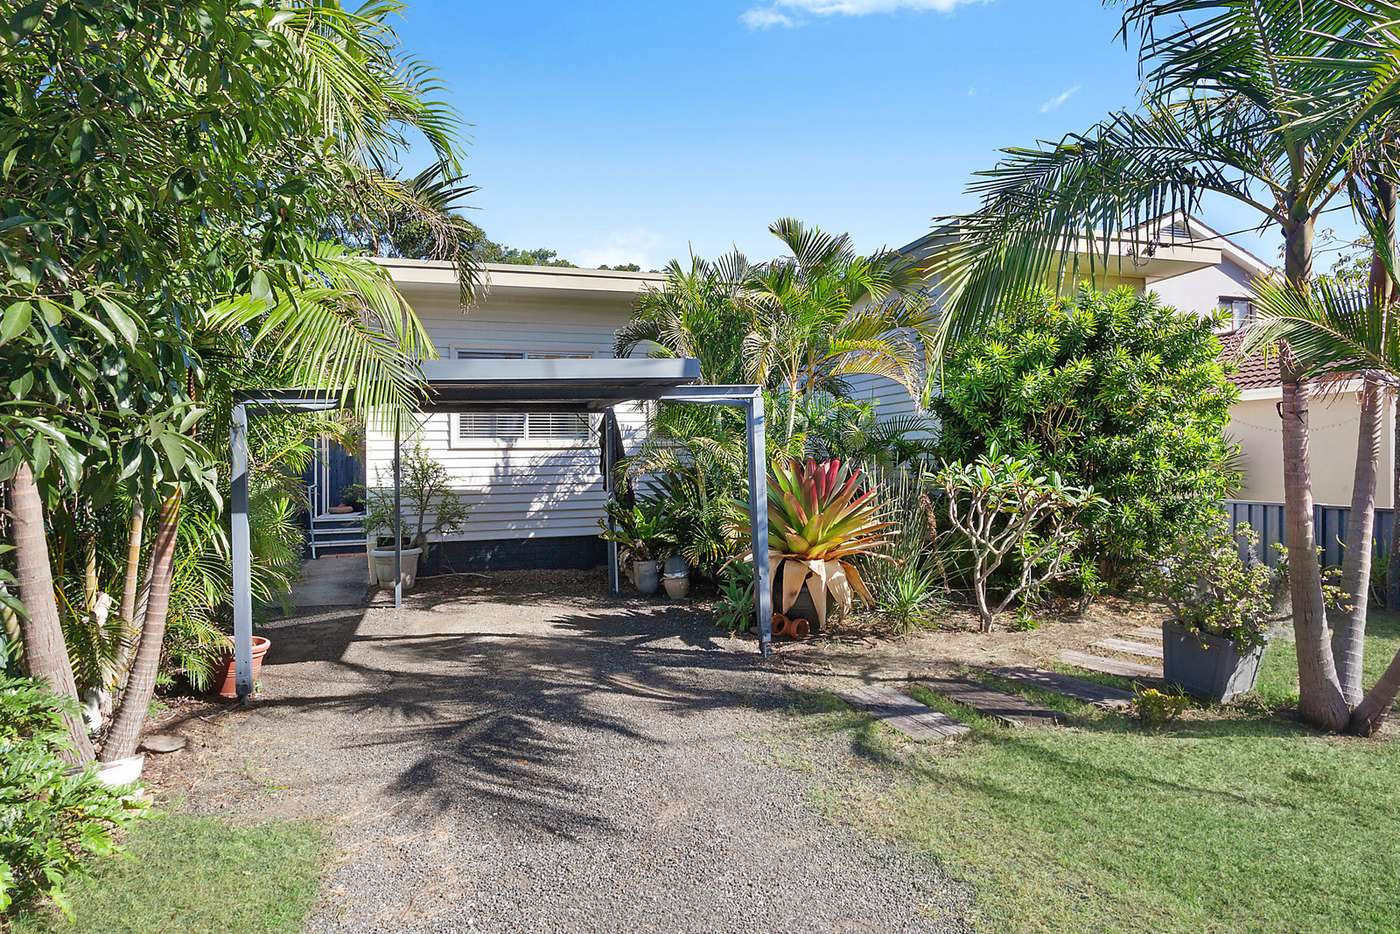 Main view of Homely house listing, 36 Adelaide Avenue, Umina Beach NSW 2257